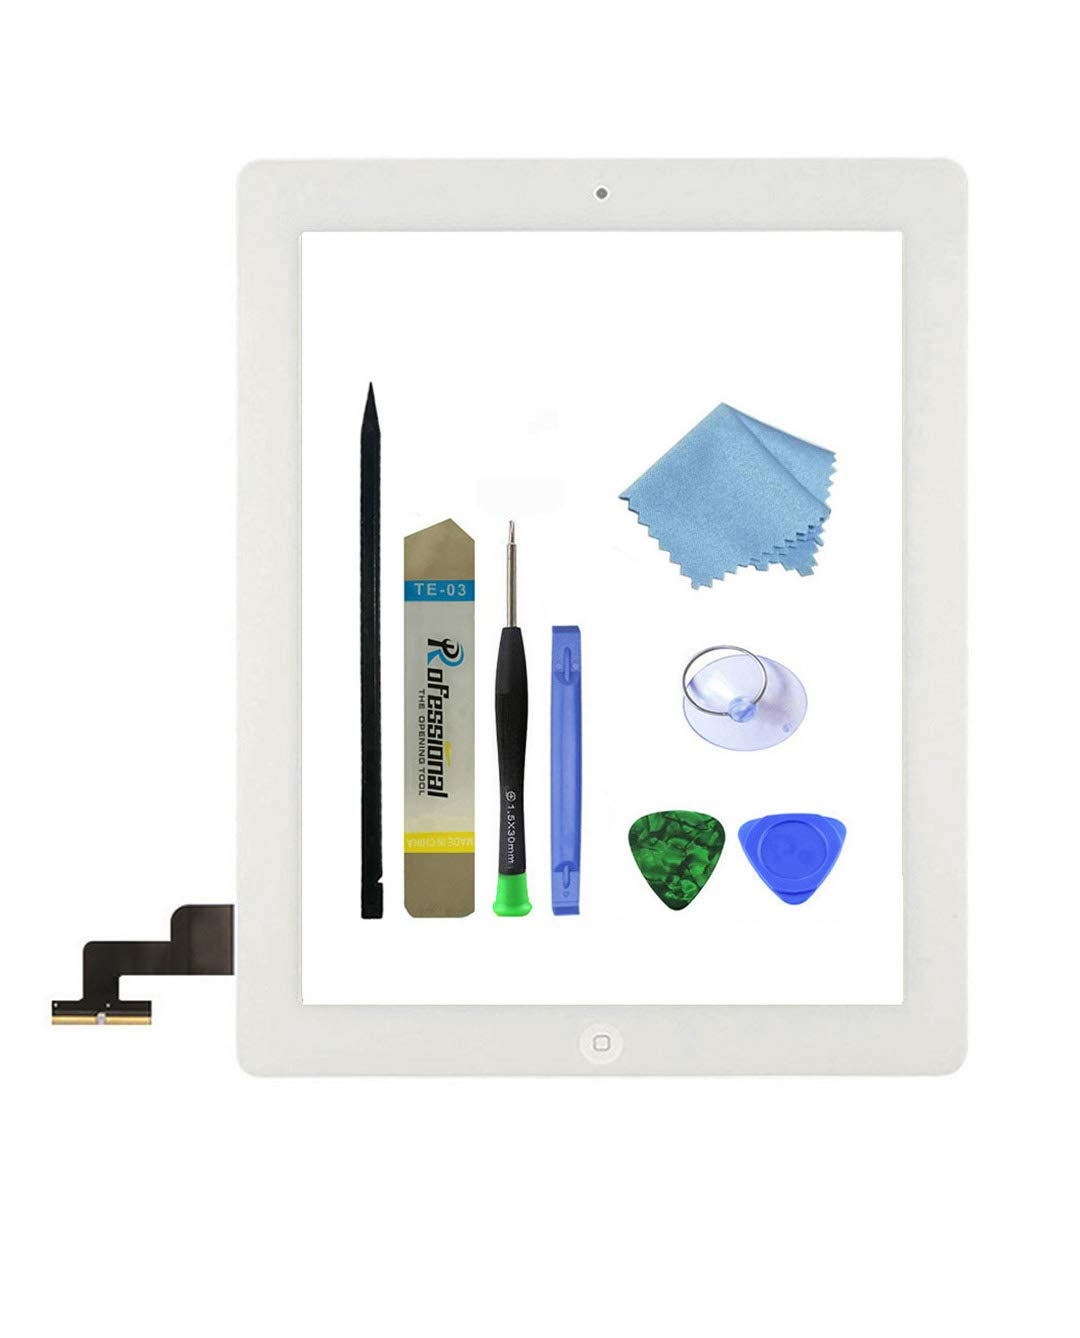 Zentop White iPad 2 Screen Replacement,iPad 2 (2nd Generation) A1395 A1396 A1397 Touch Screen Glass Digitizer Includes Home Button,Camera Holder,Frame Bezel,Preinstalled Adhesive and Tool Kit.